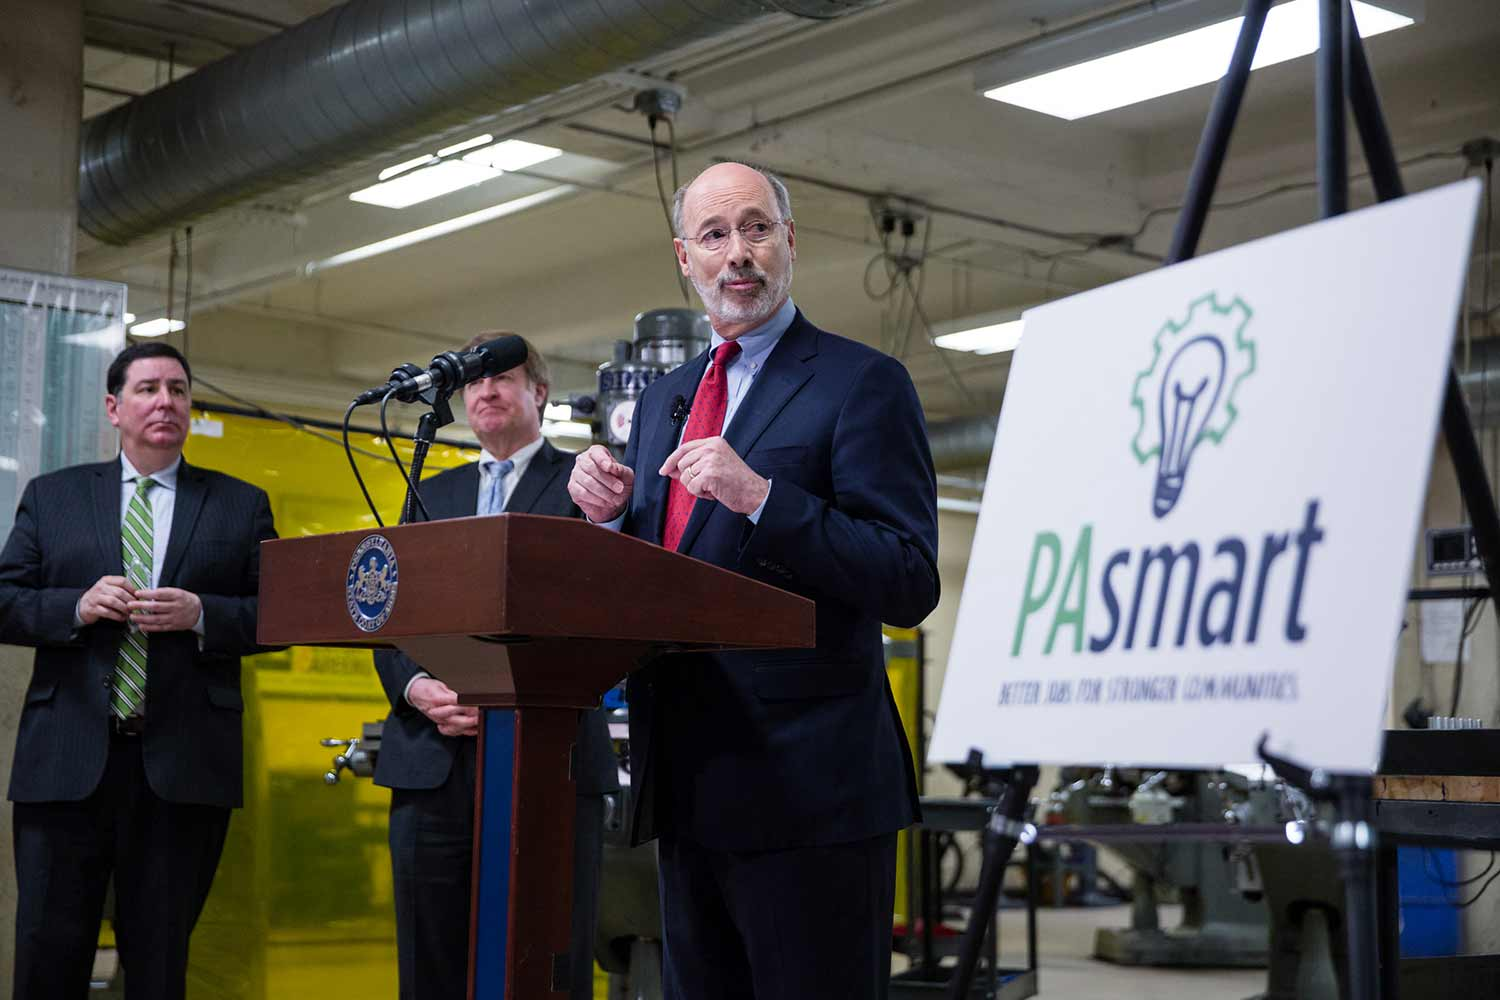 Check out the latest news in Pennsylvania